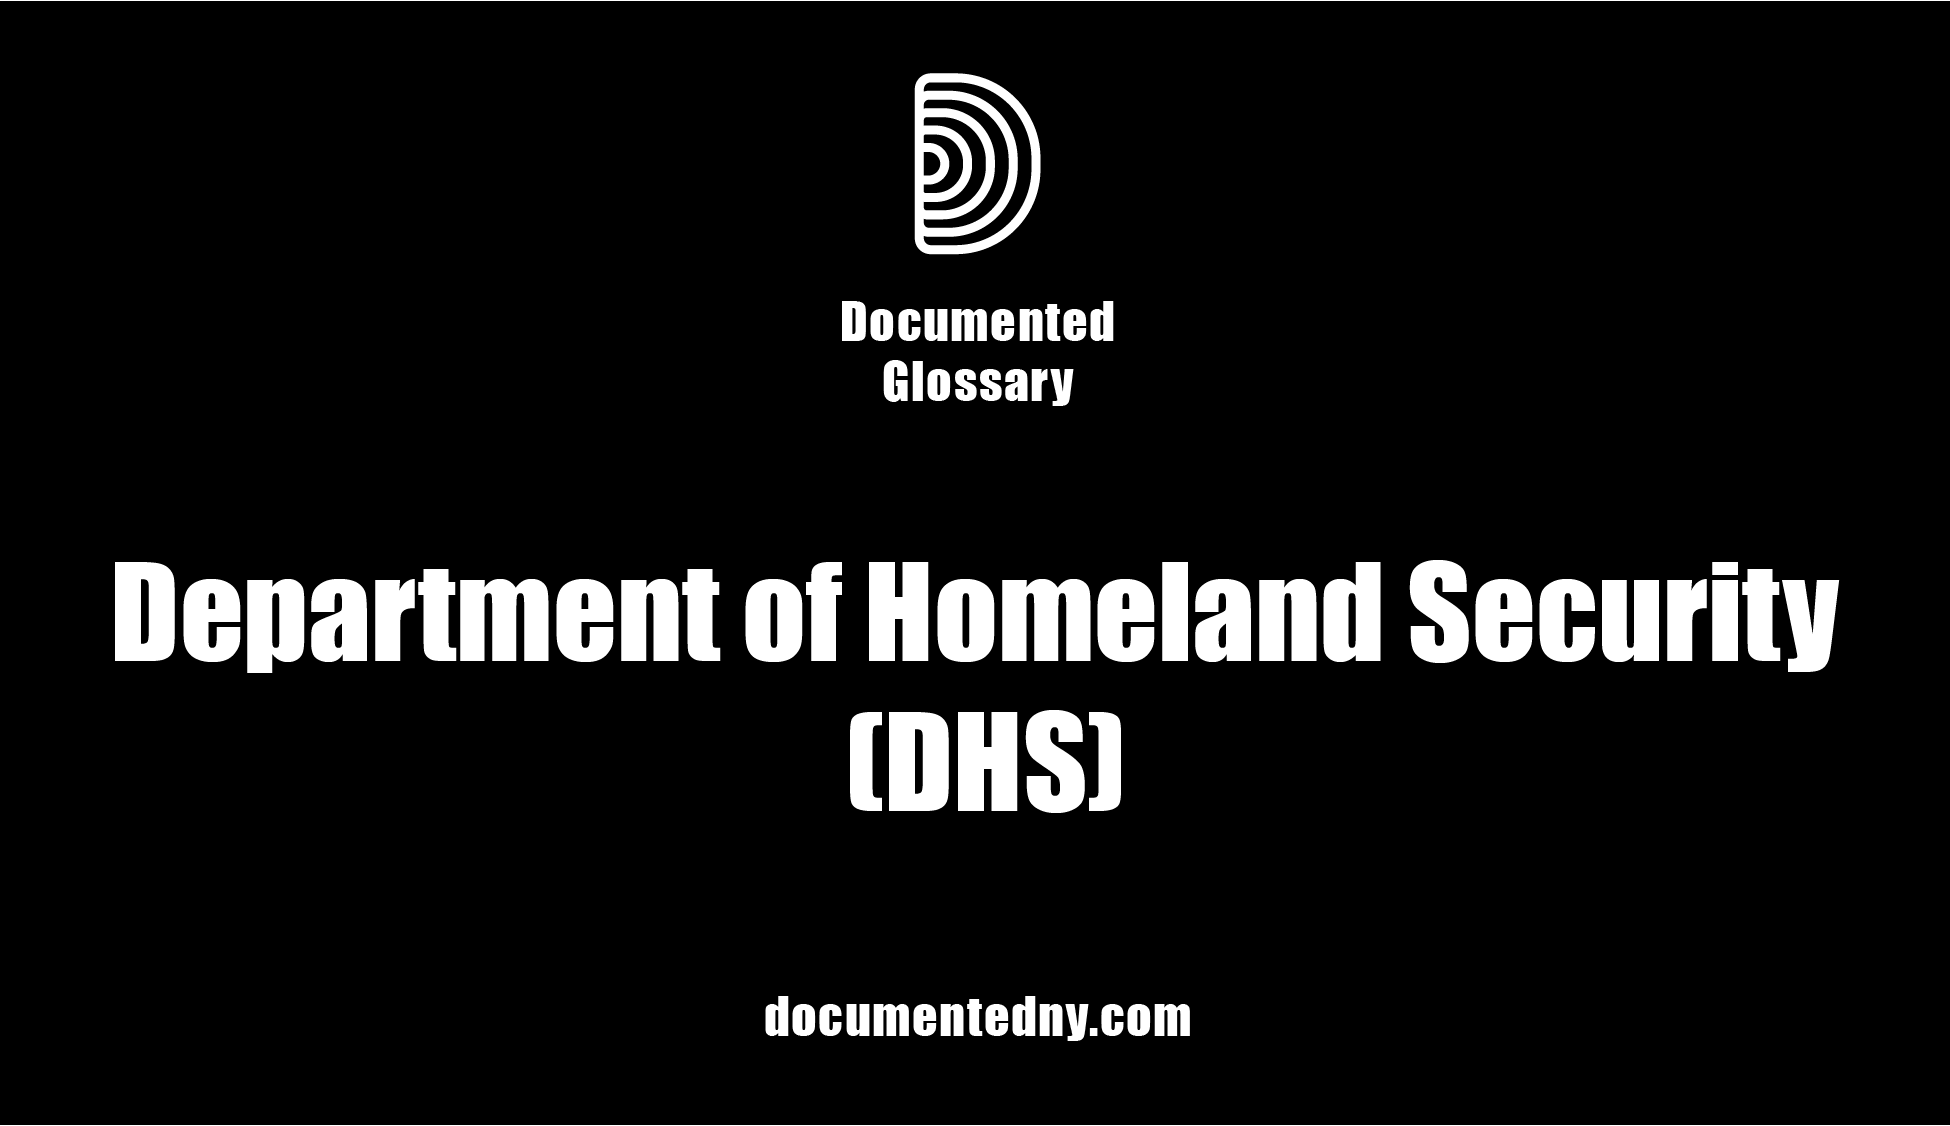 The Department of Homeland Security completely reshaped how the U.S. oversees its immigration enforcement agencies.